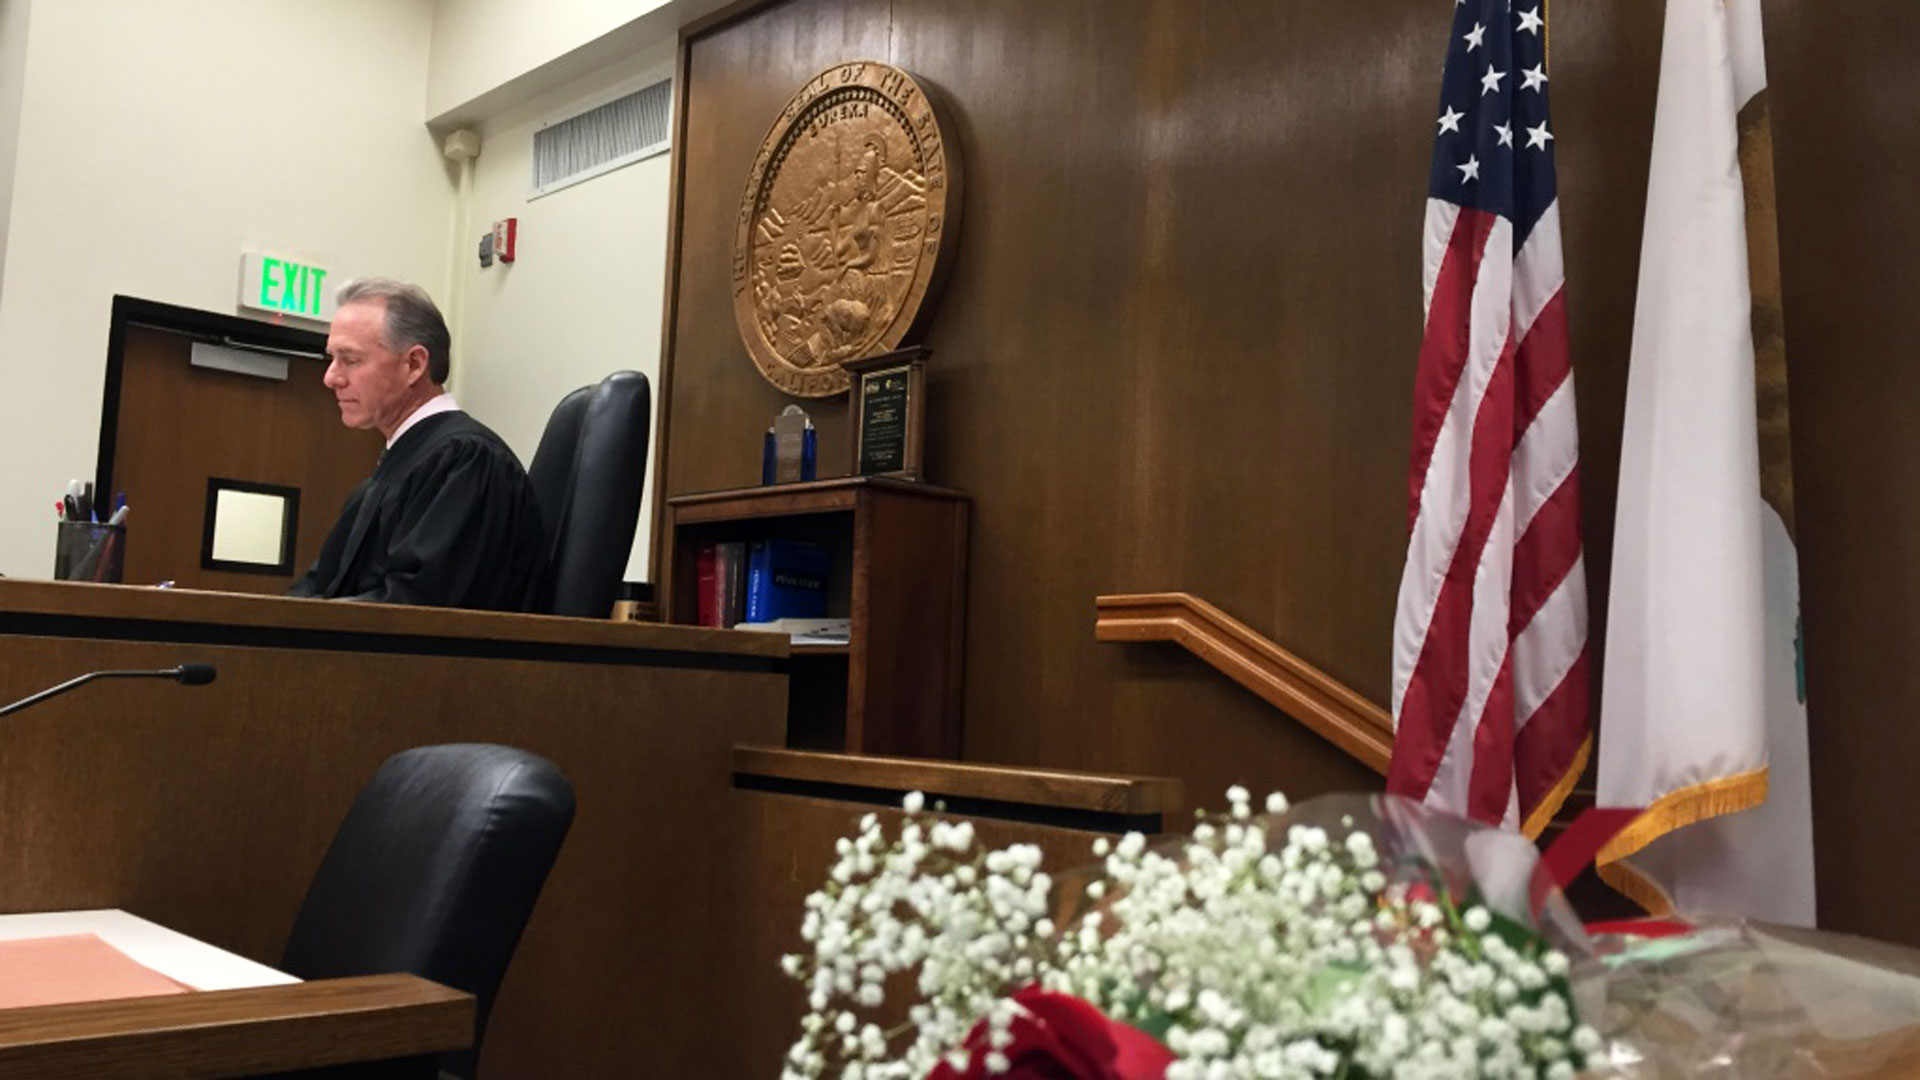 Judge Matt Anderson presides over his Newport Beach courtroom.